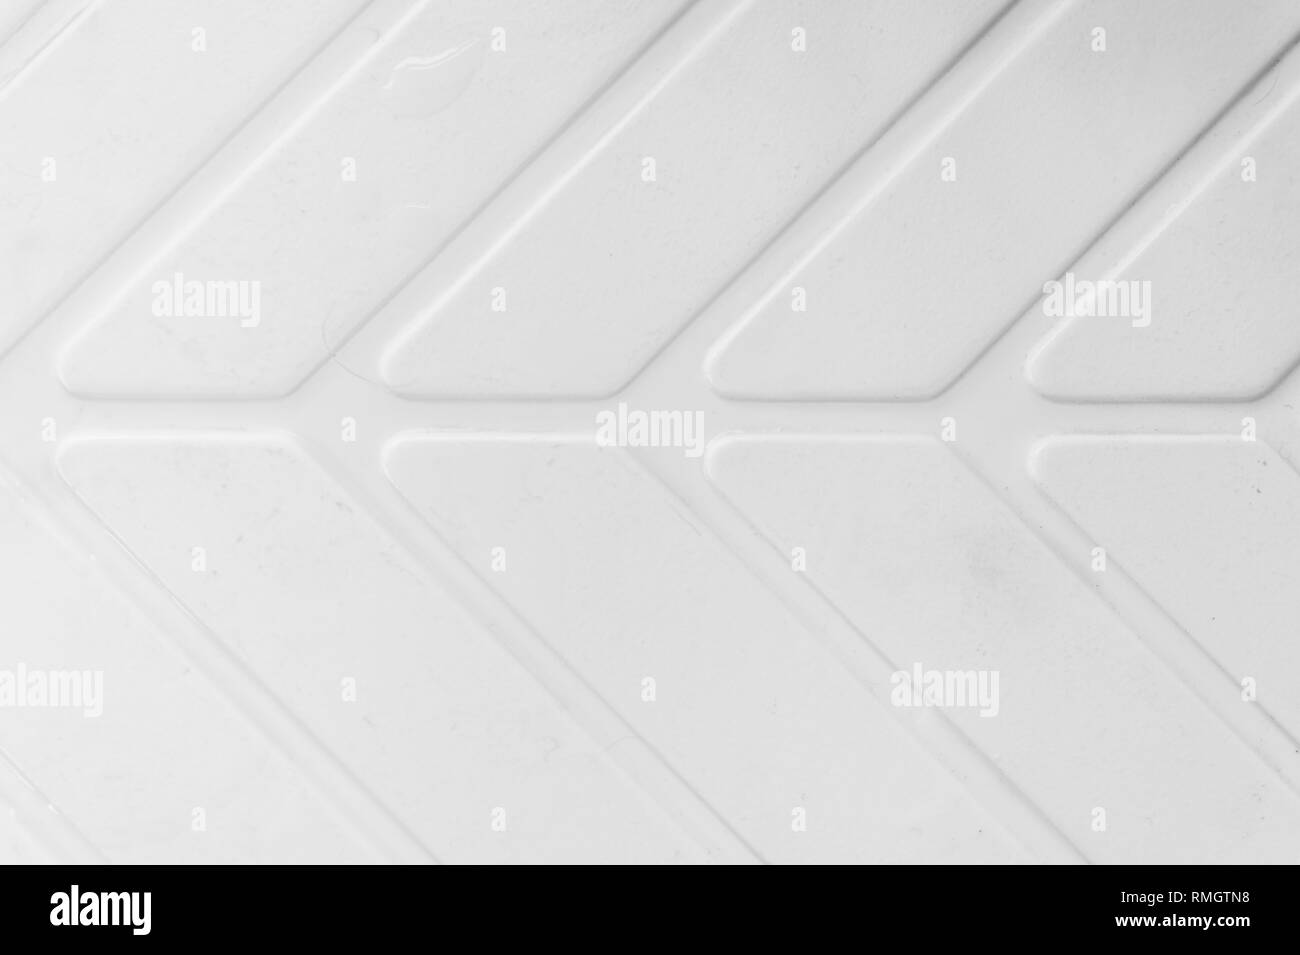 An arrow shape pattern and texture in black and white - Stock Image